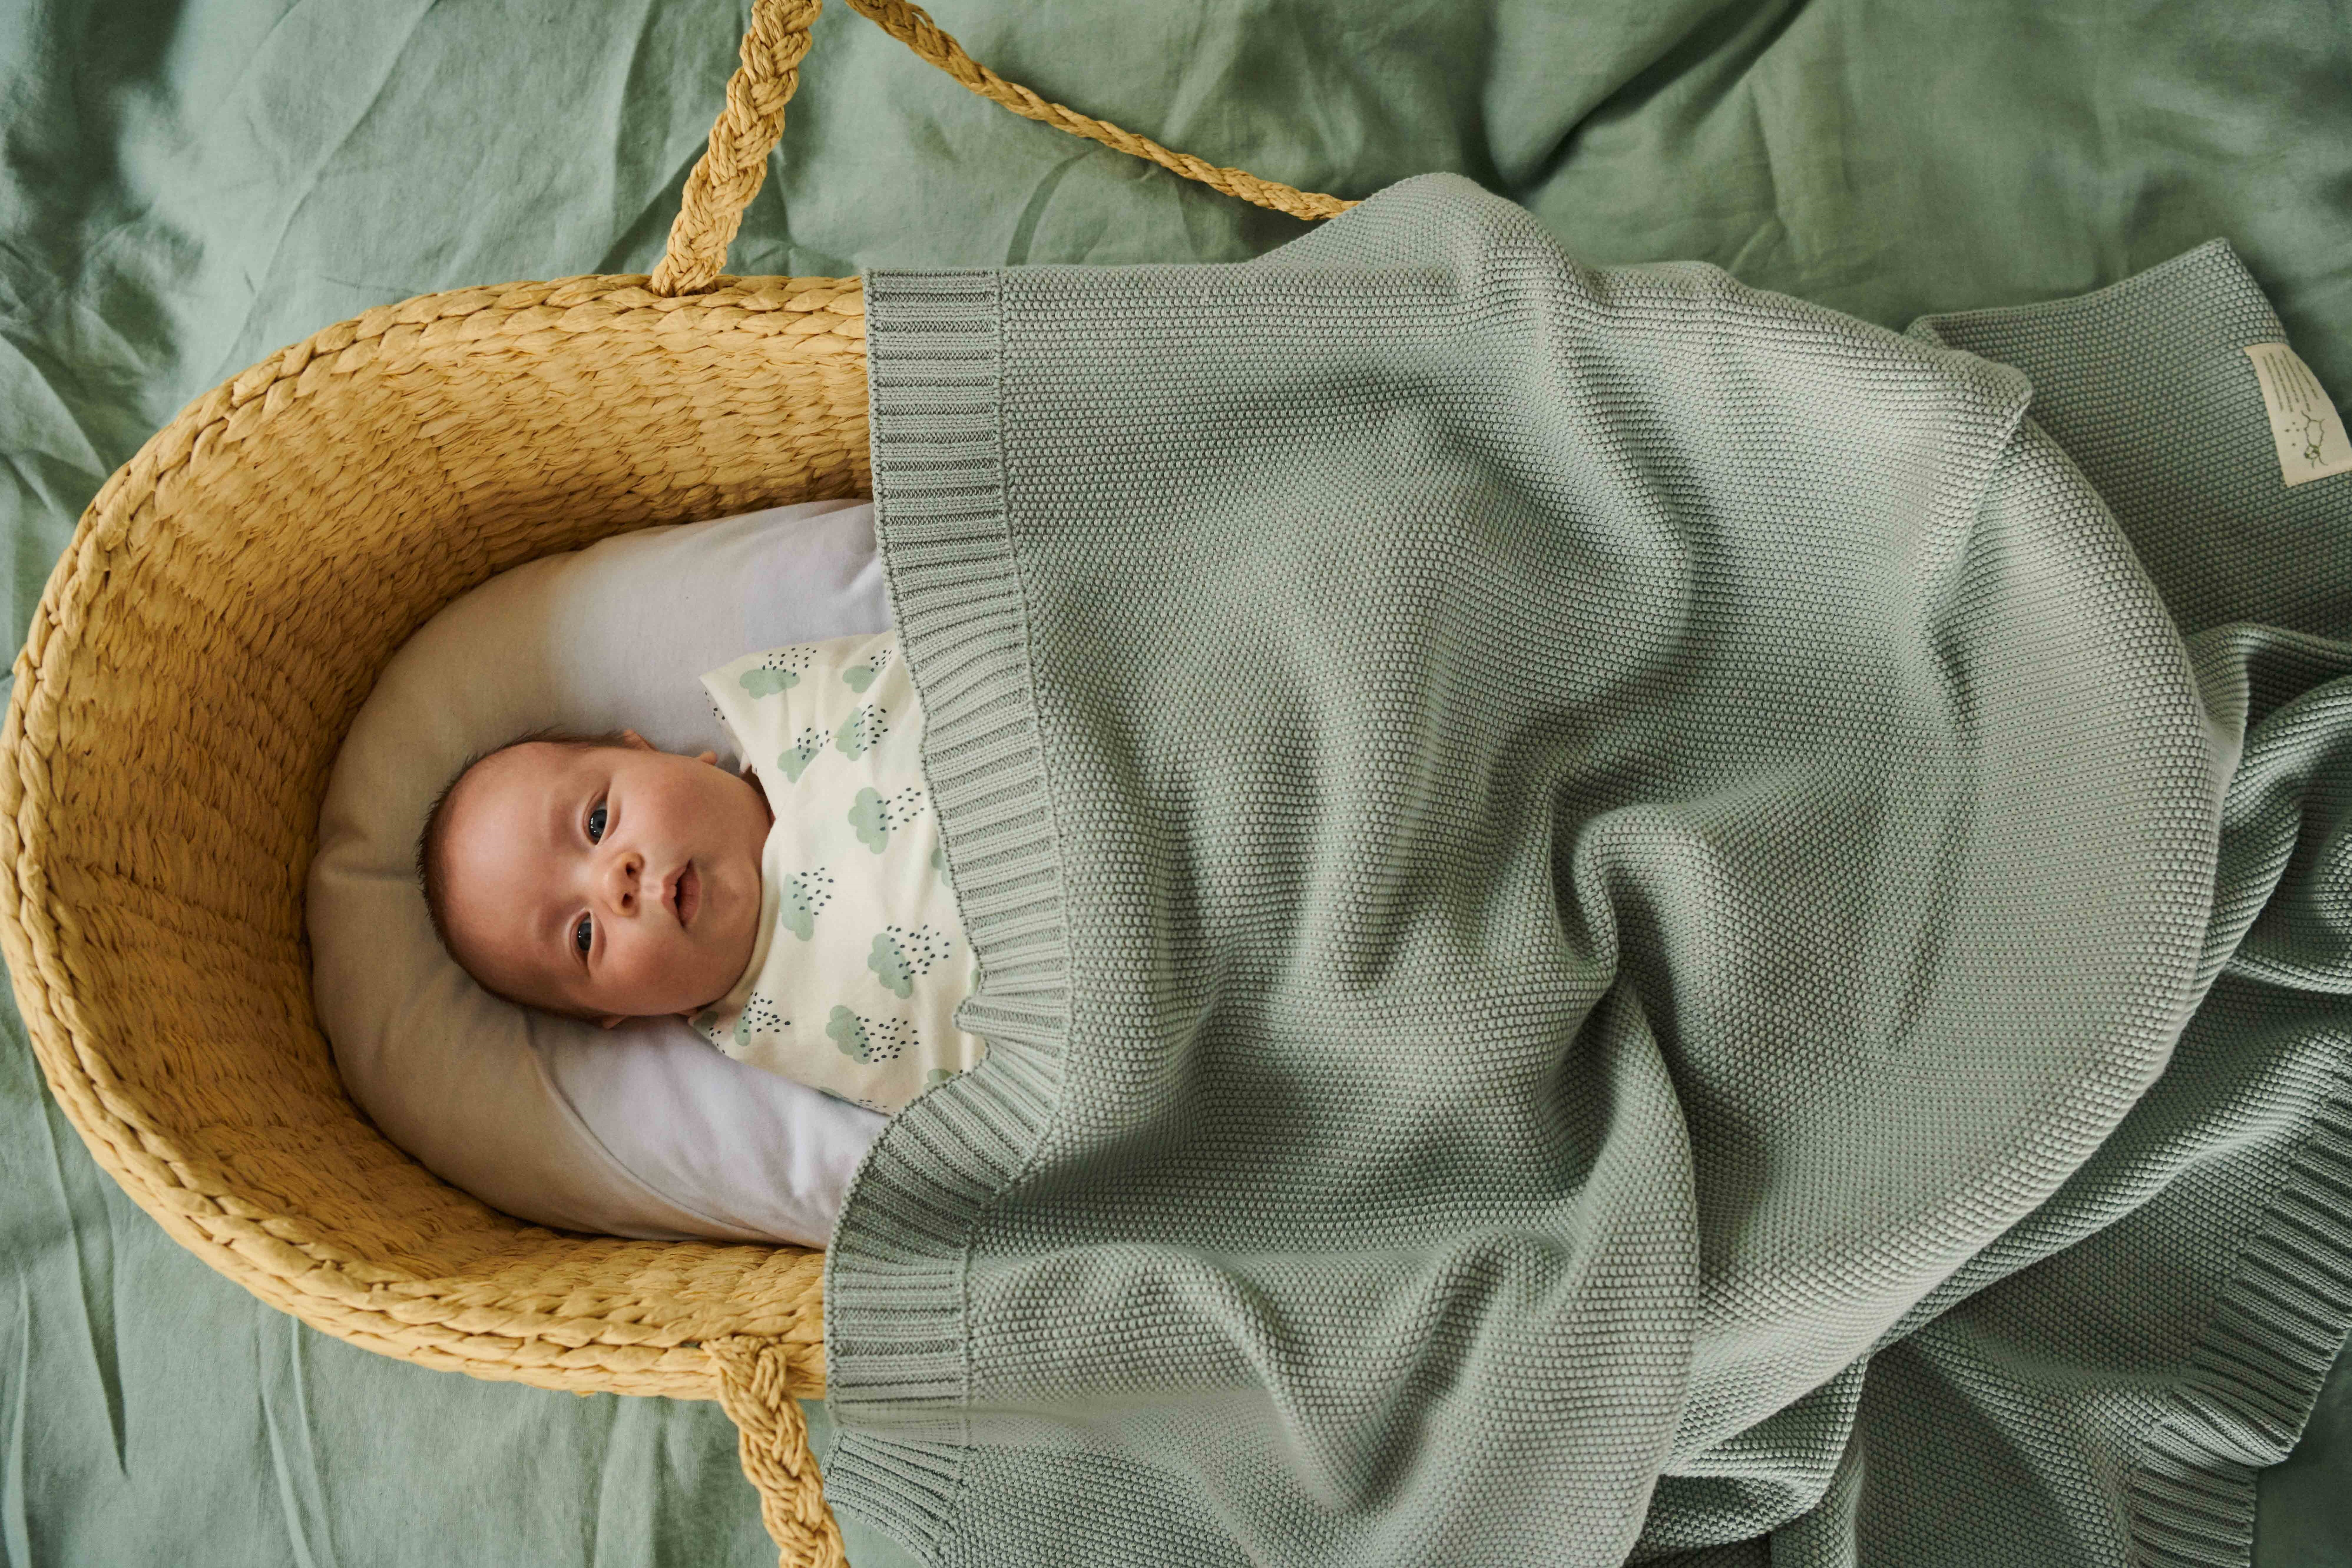 libby cain: on swaddling